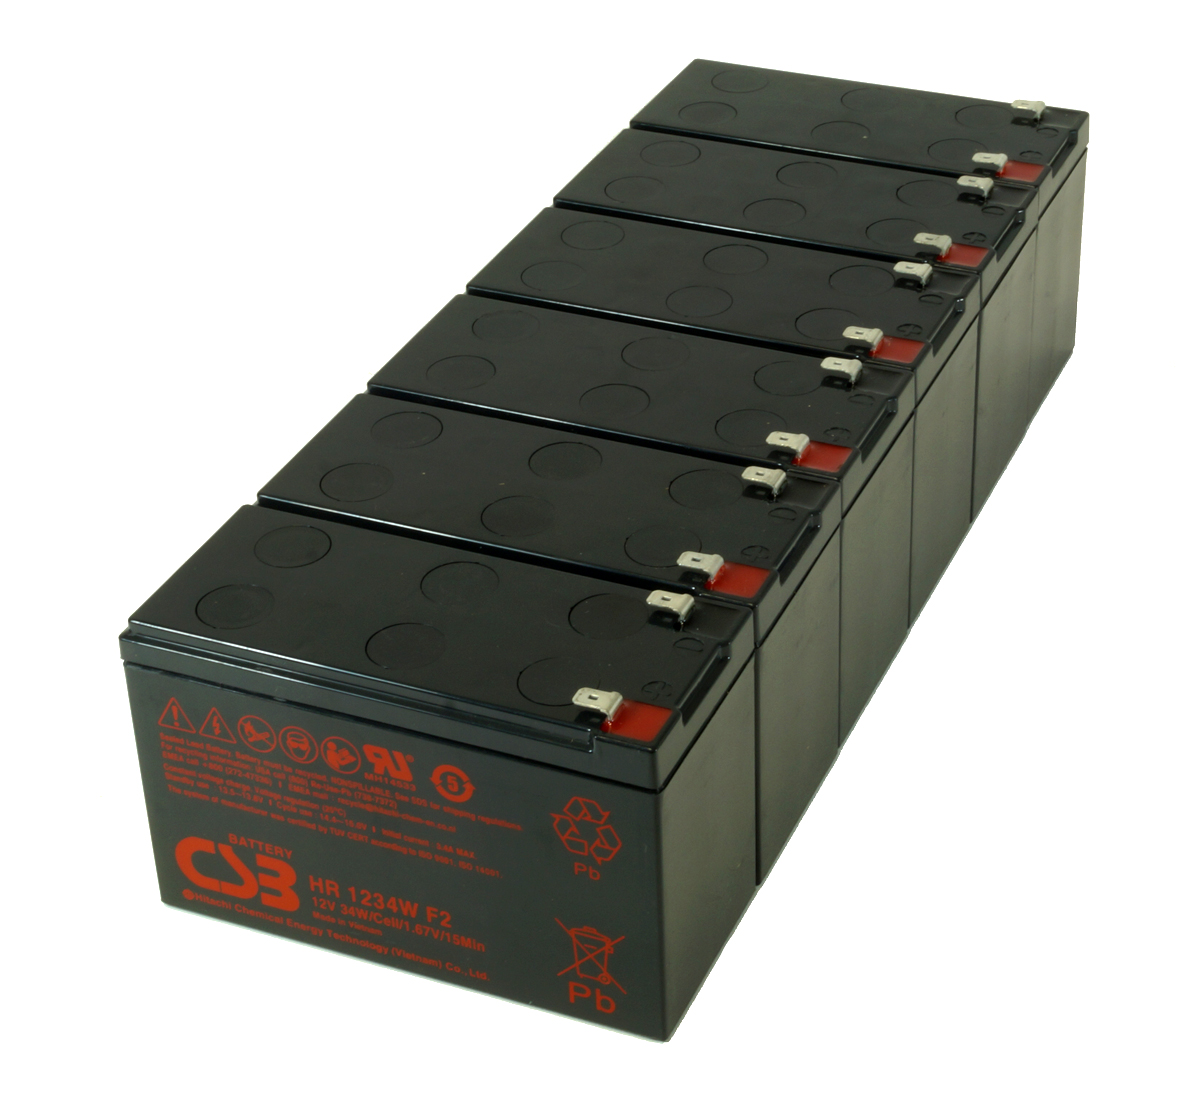 Battery Kit for Delta Power Amplon N Series N-3K UPS